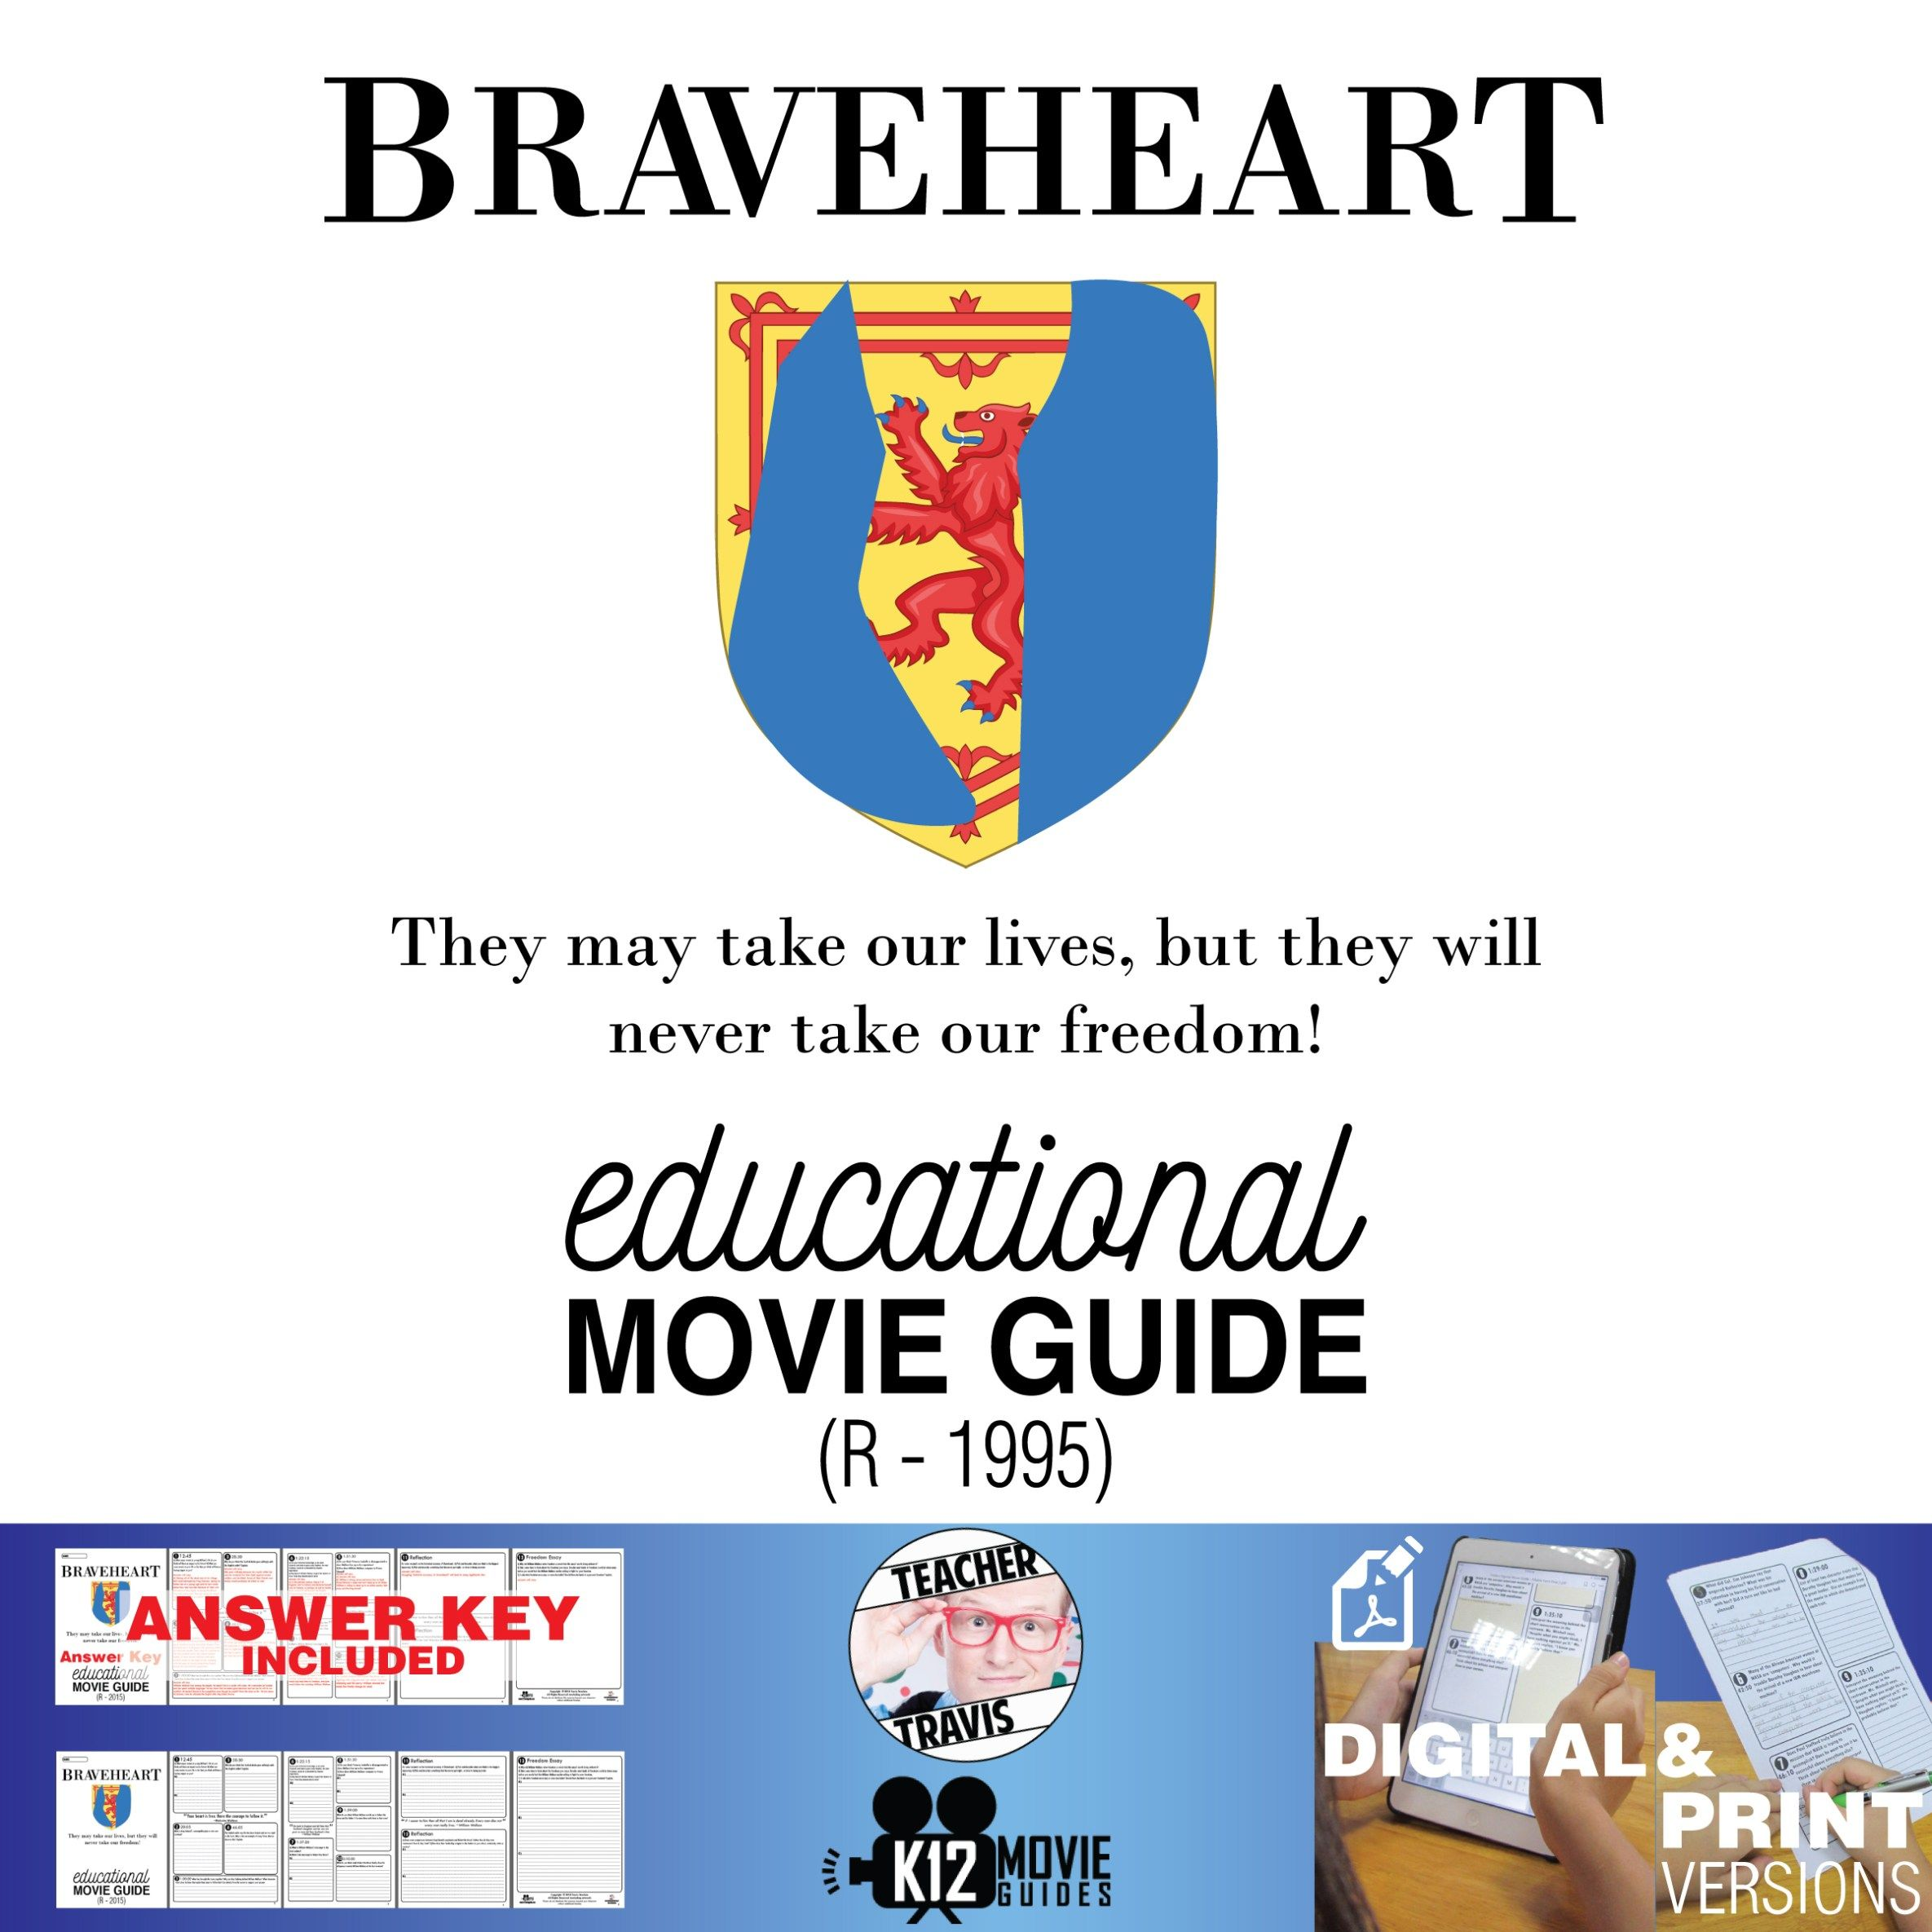 This Braveheart Movie Guide